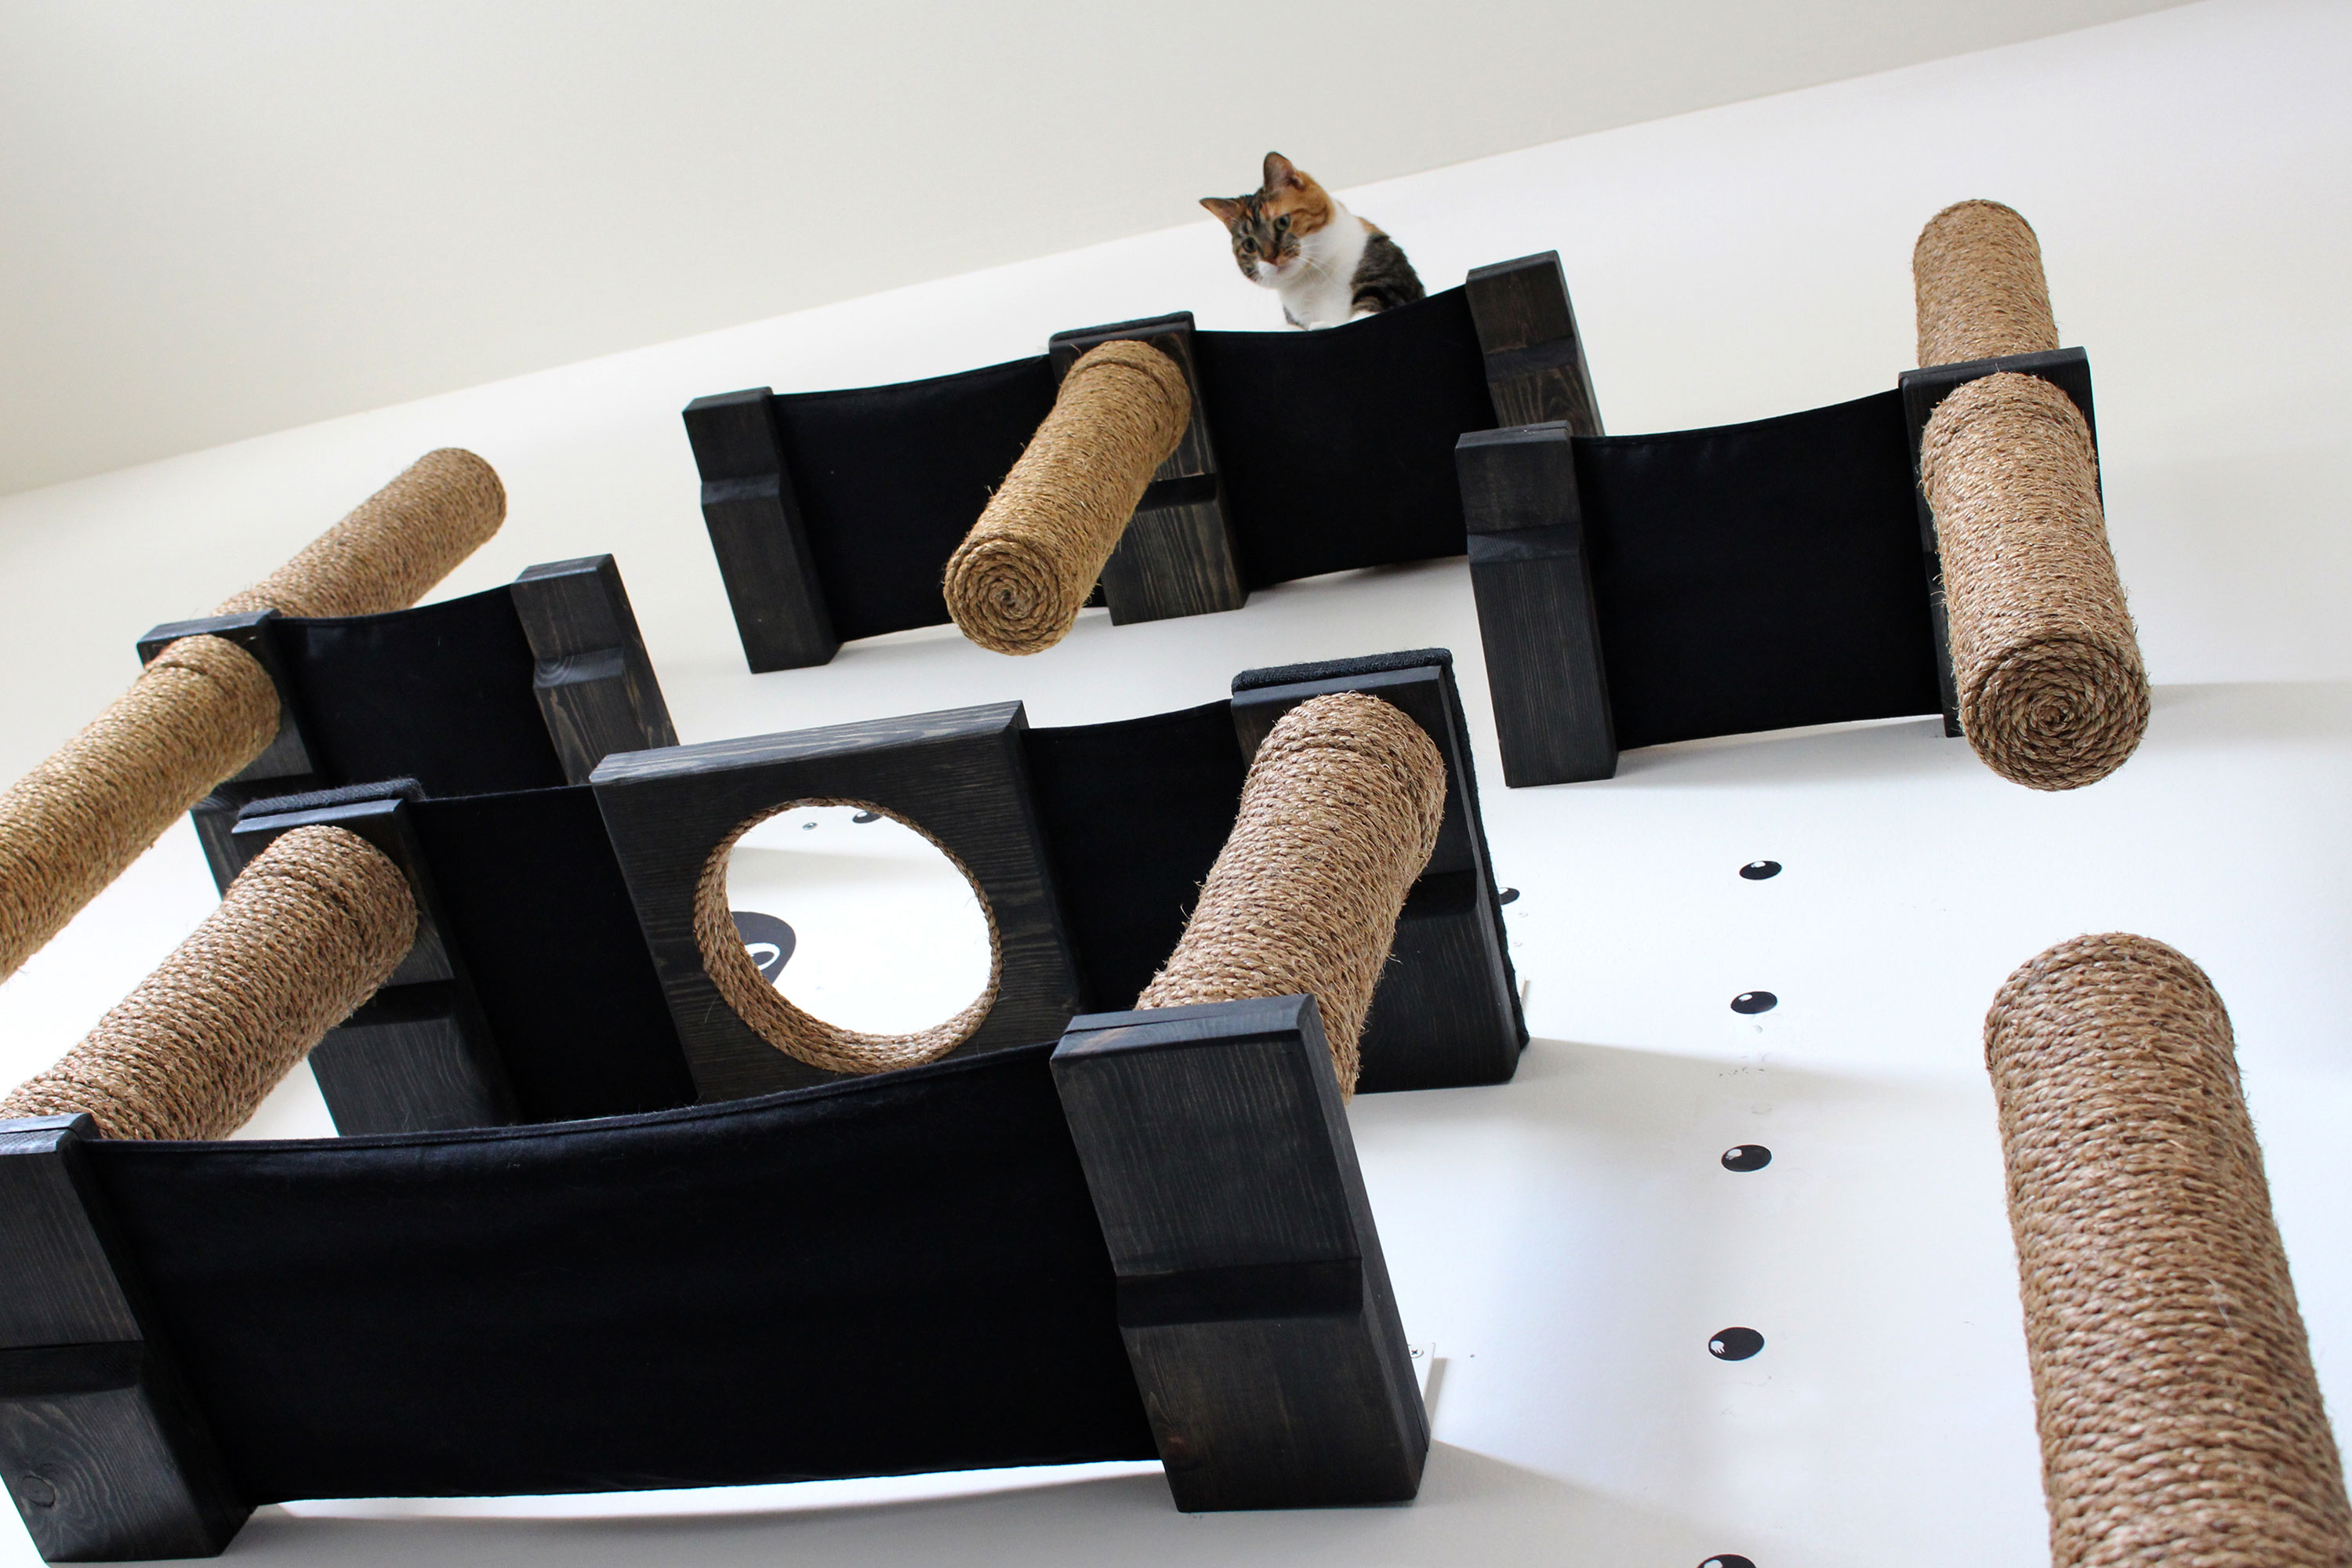 under shot of wall mounted cat complex with cat perched atop it